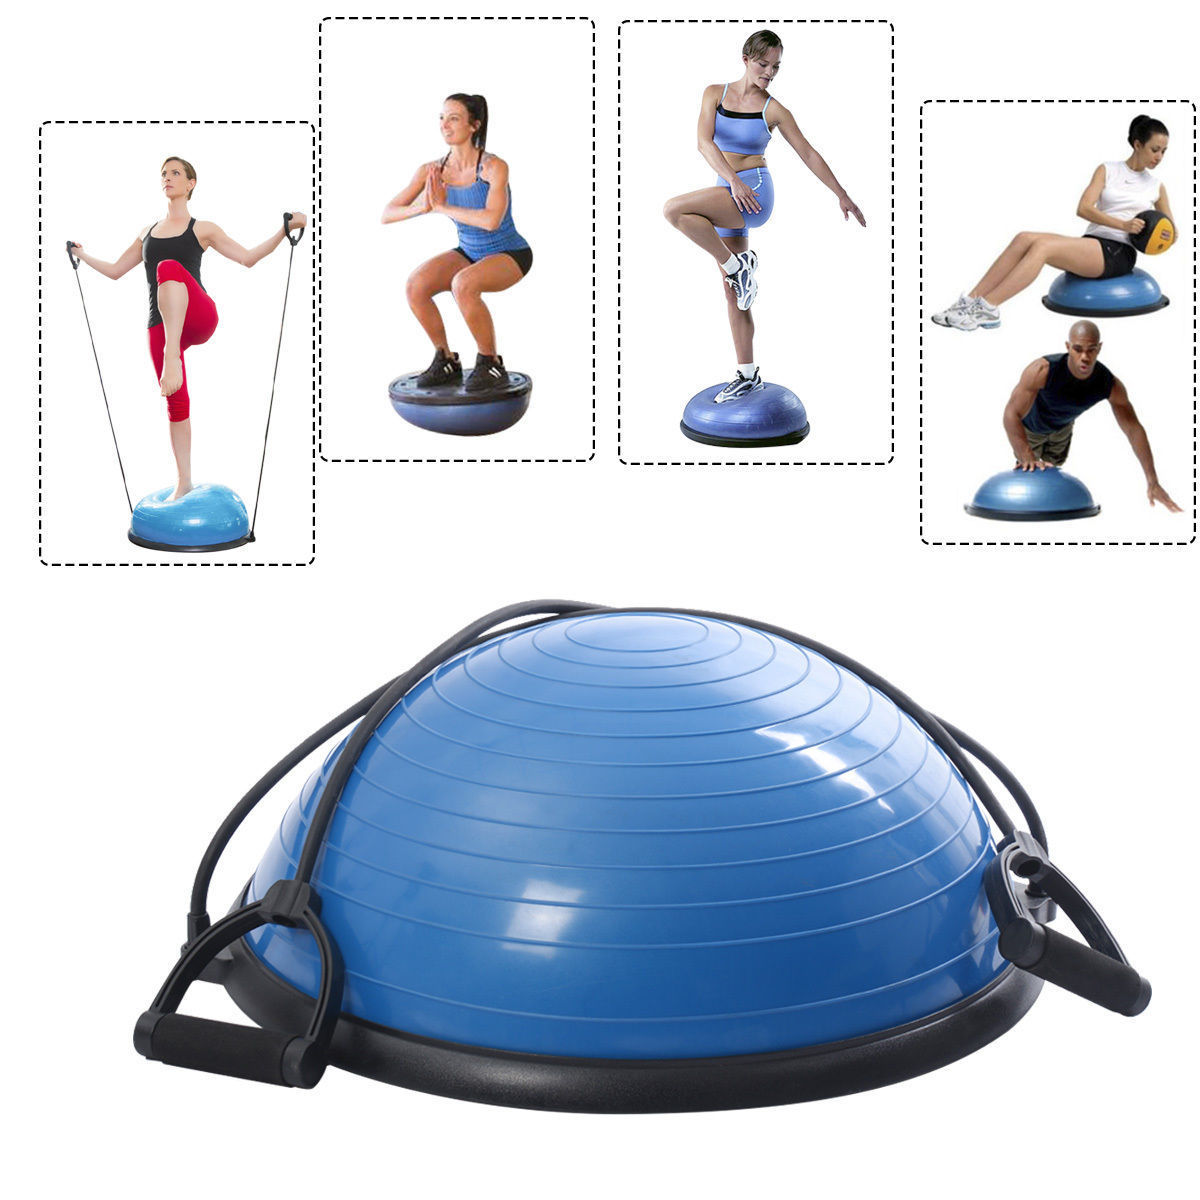 Costway Ball Balance Trainer Yoga Fitness Strength Exercise Workout W/pump (Blue)